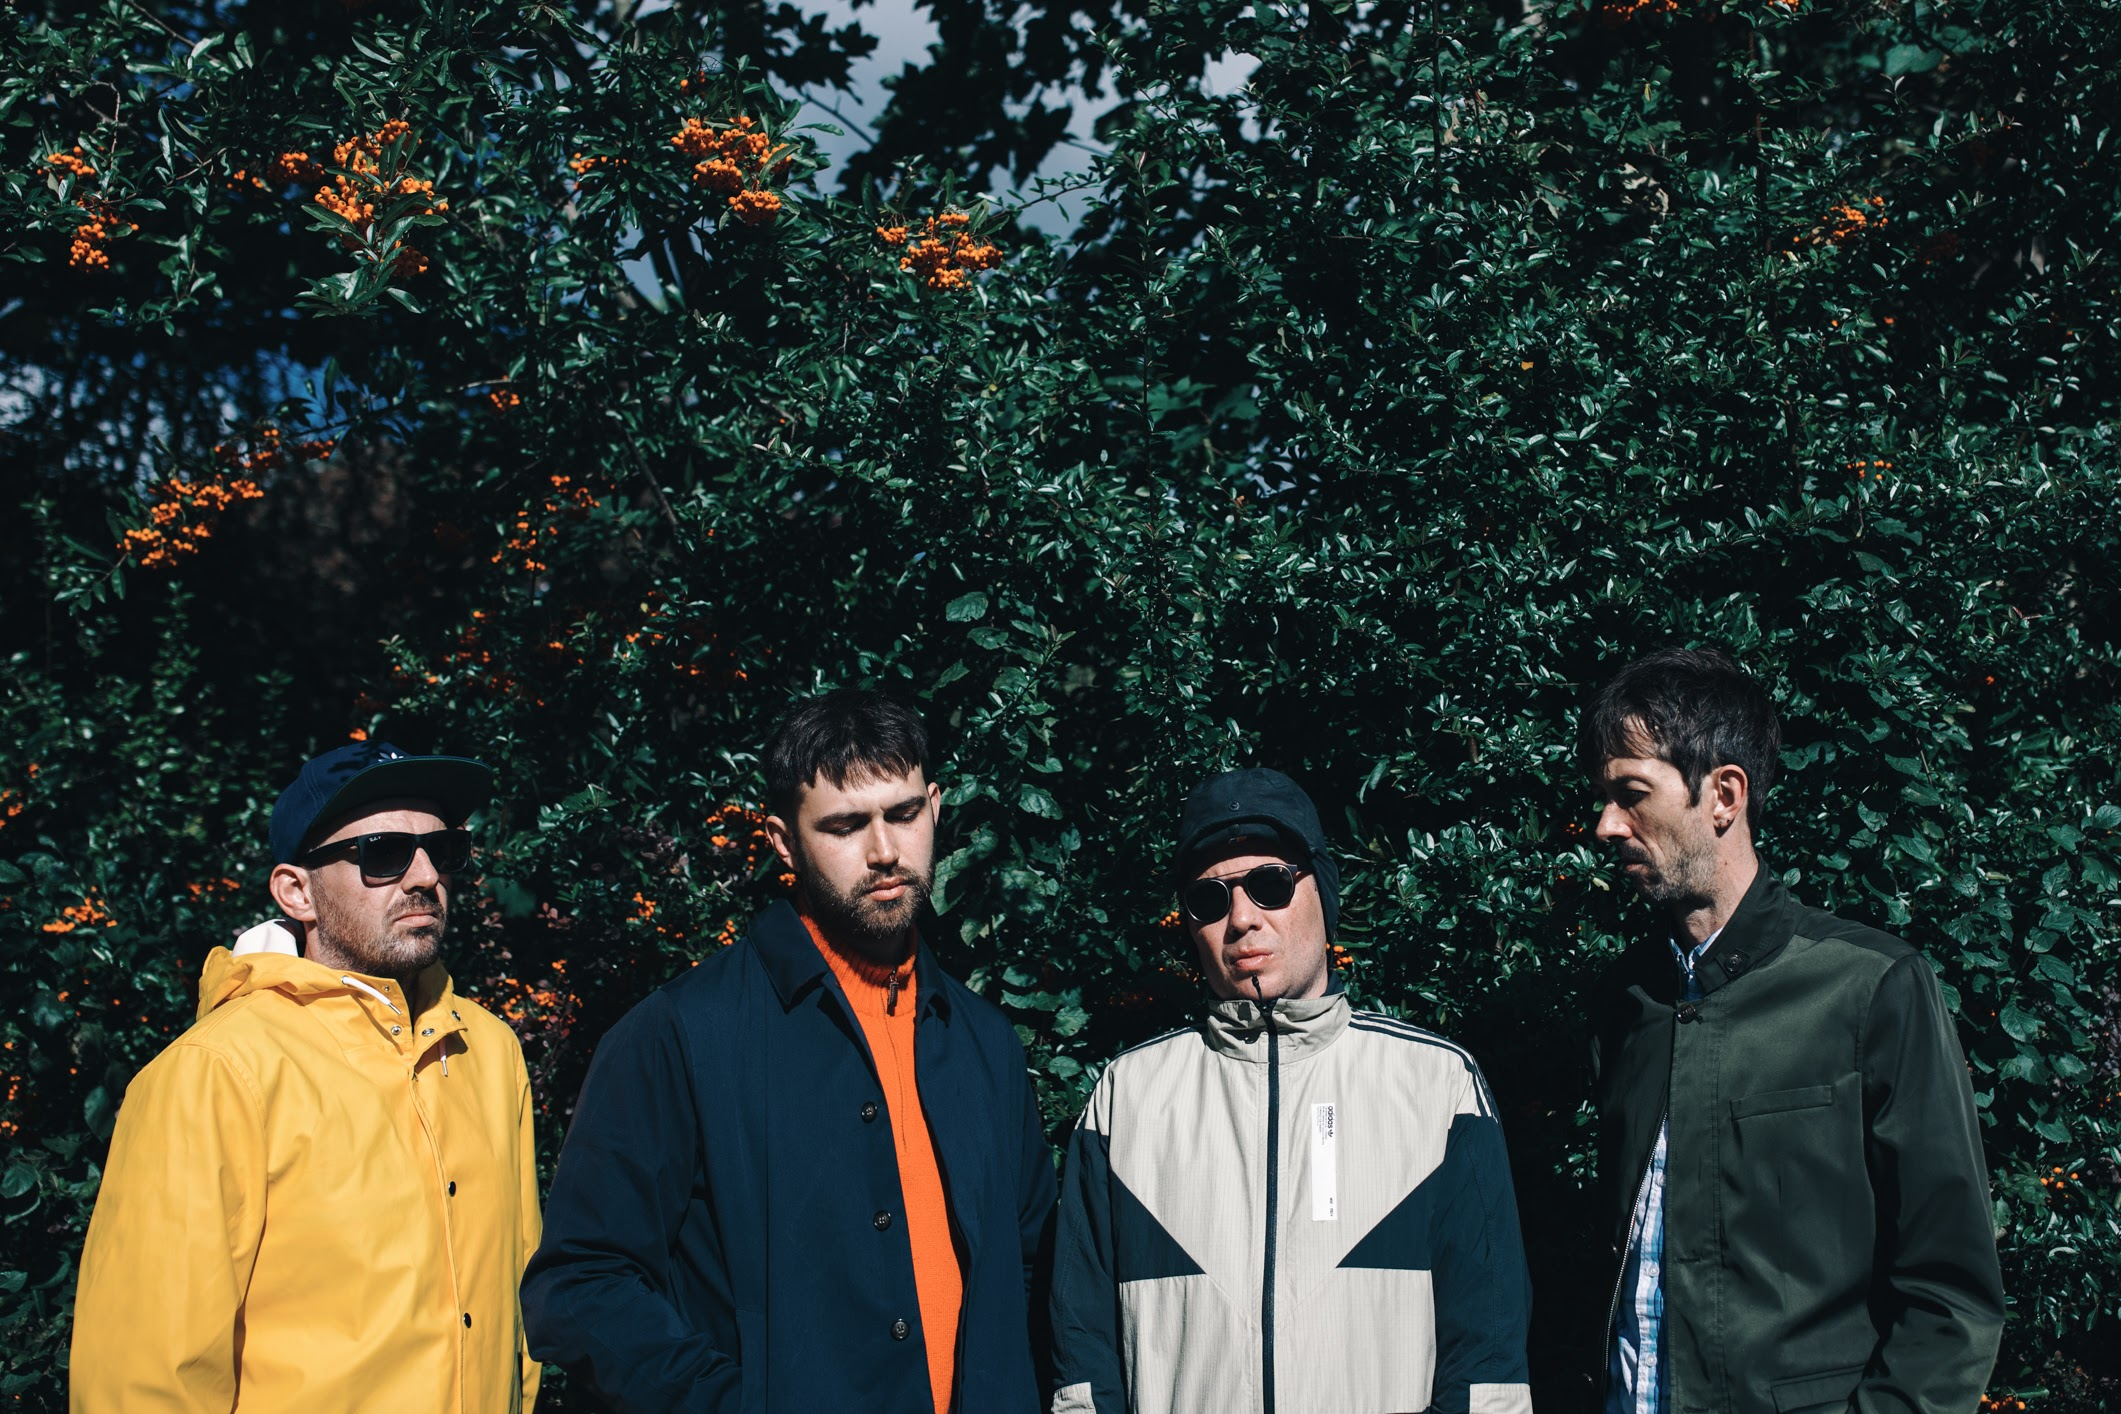 Manchester-based quartet VENTRELLES share video for new single 'County Lines'